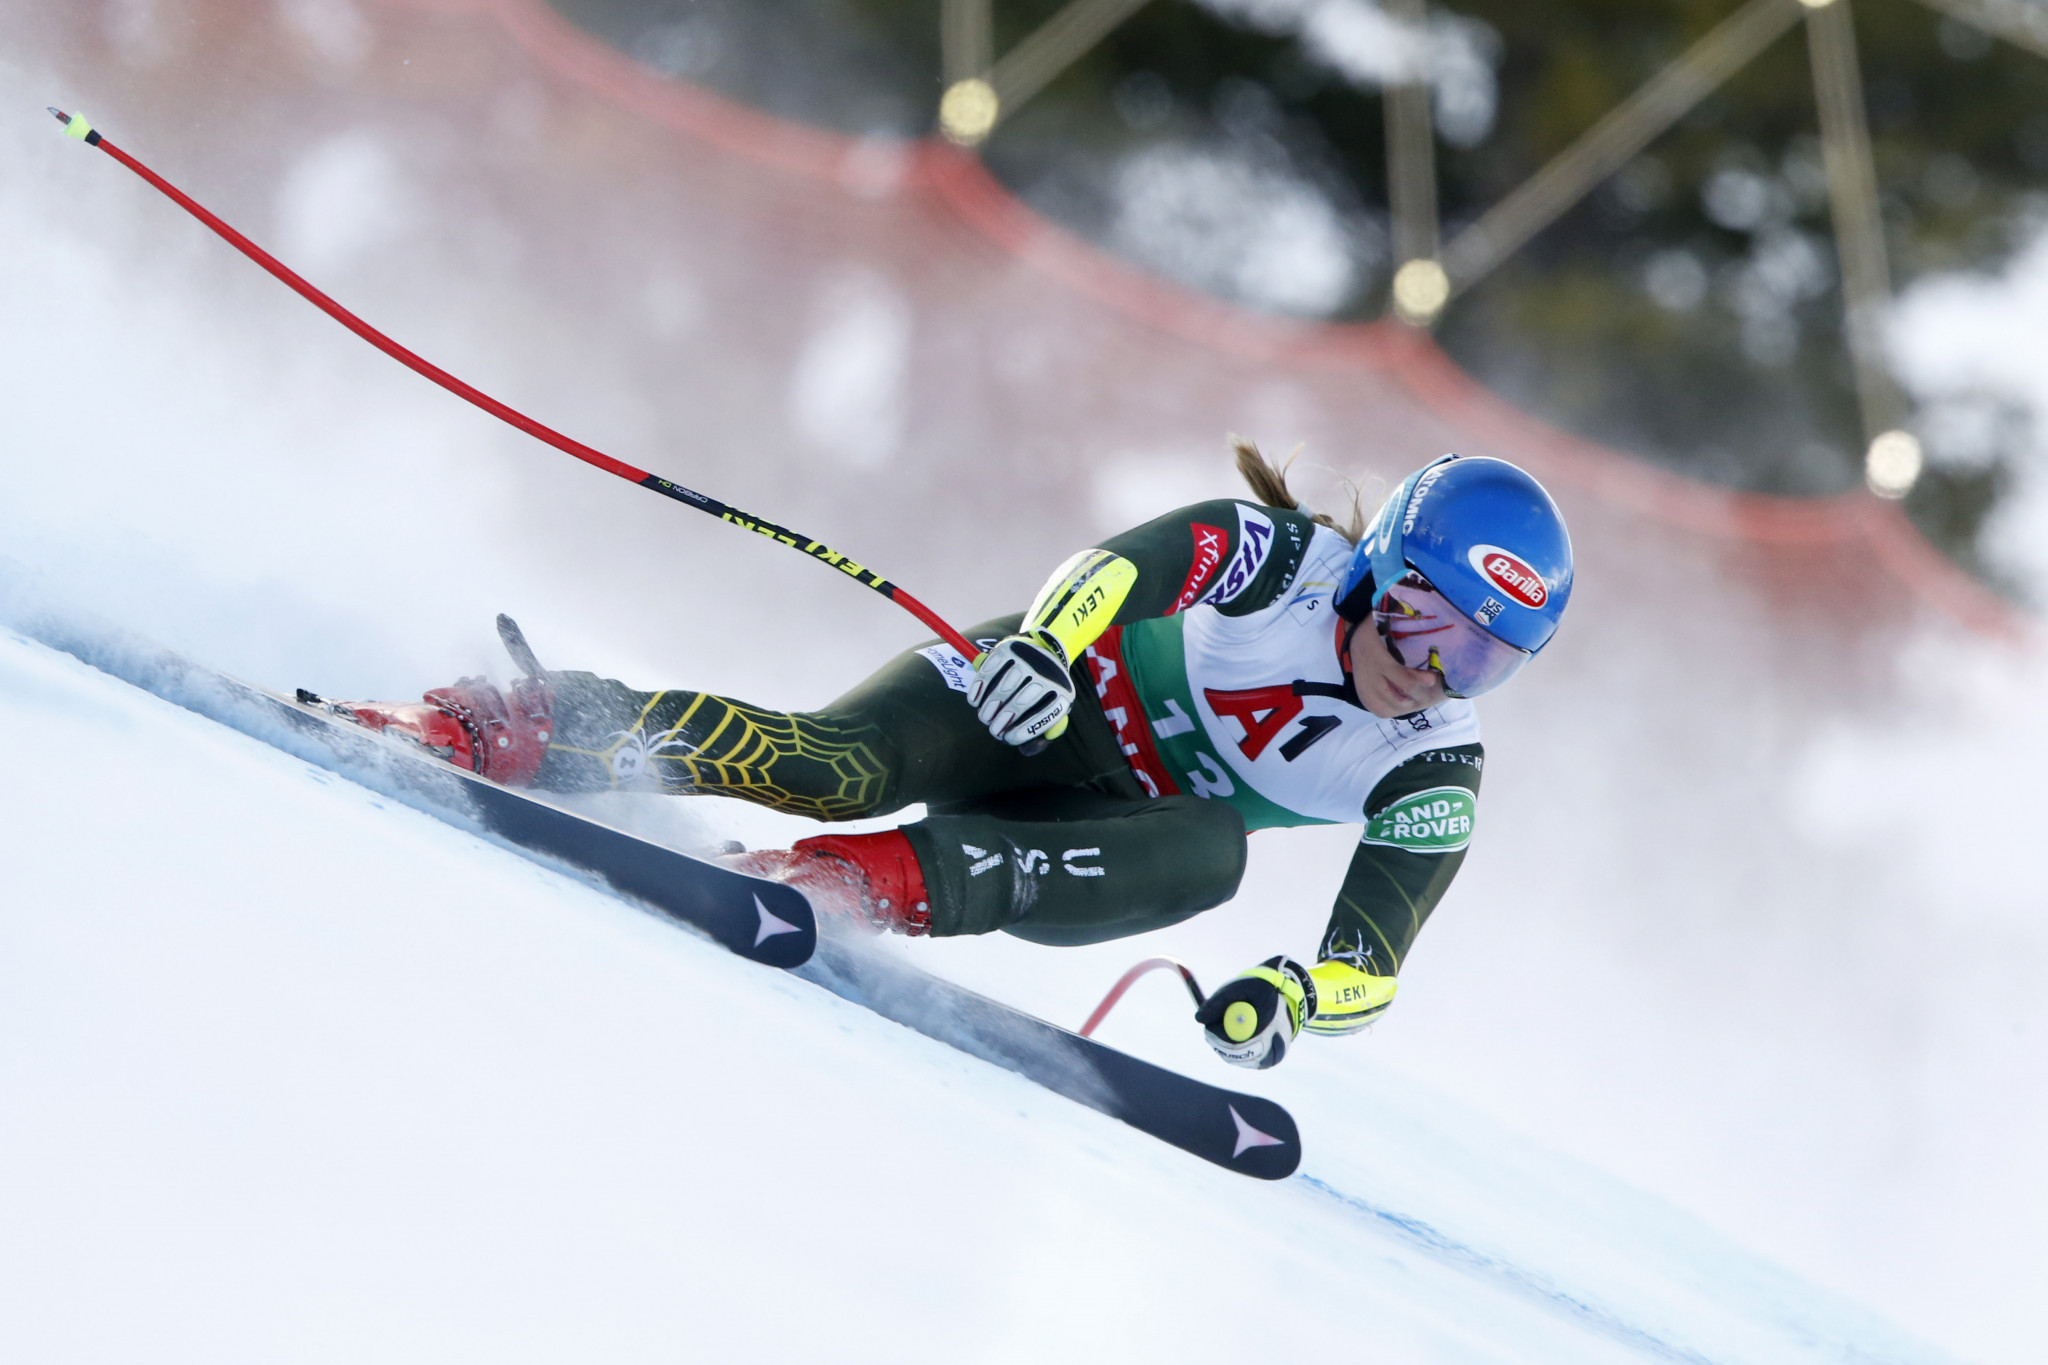 Shiffrin earns third consecutive athlete of the month award